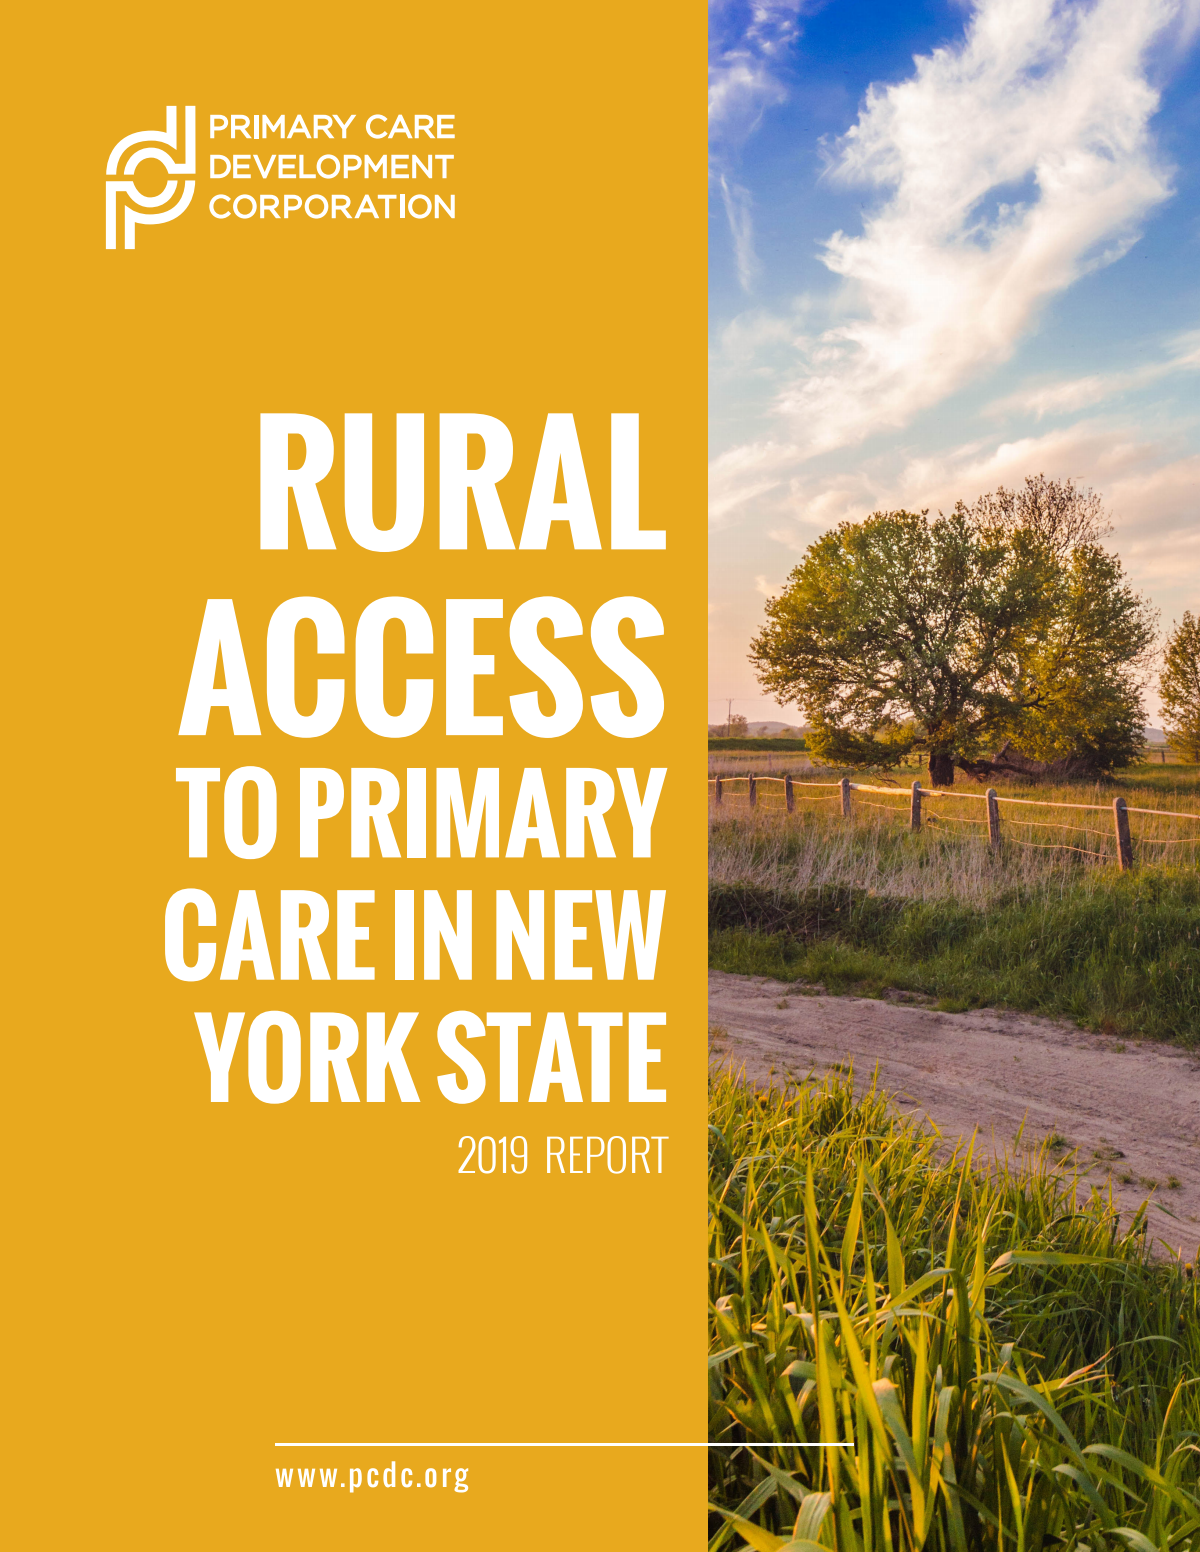 Rural Access Health report (20-25 pages)